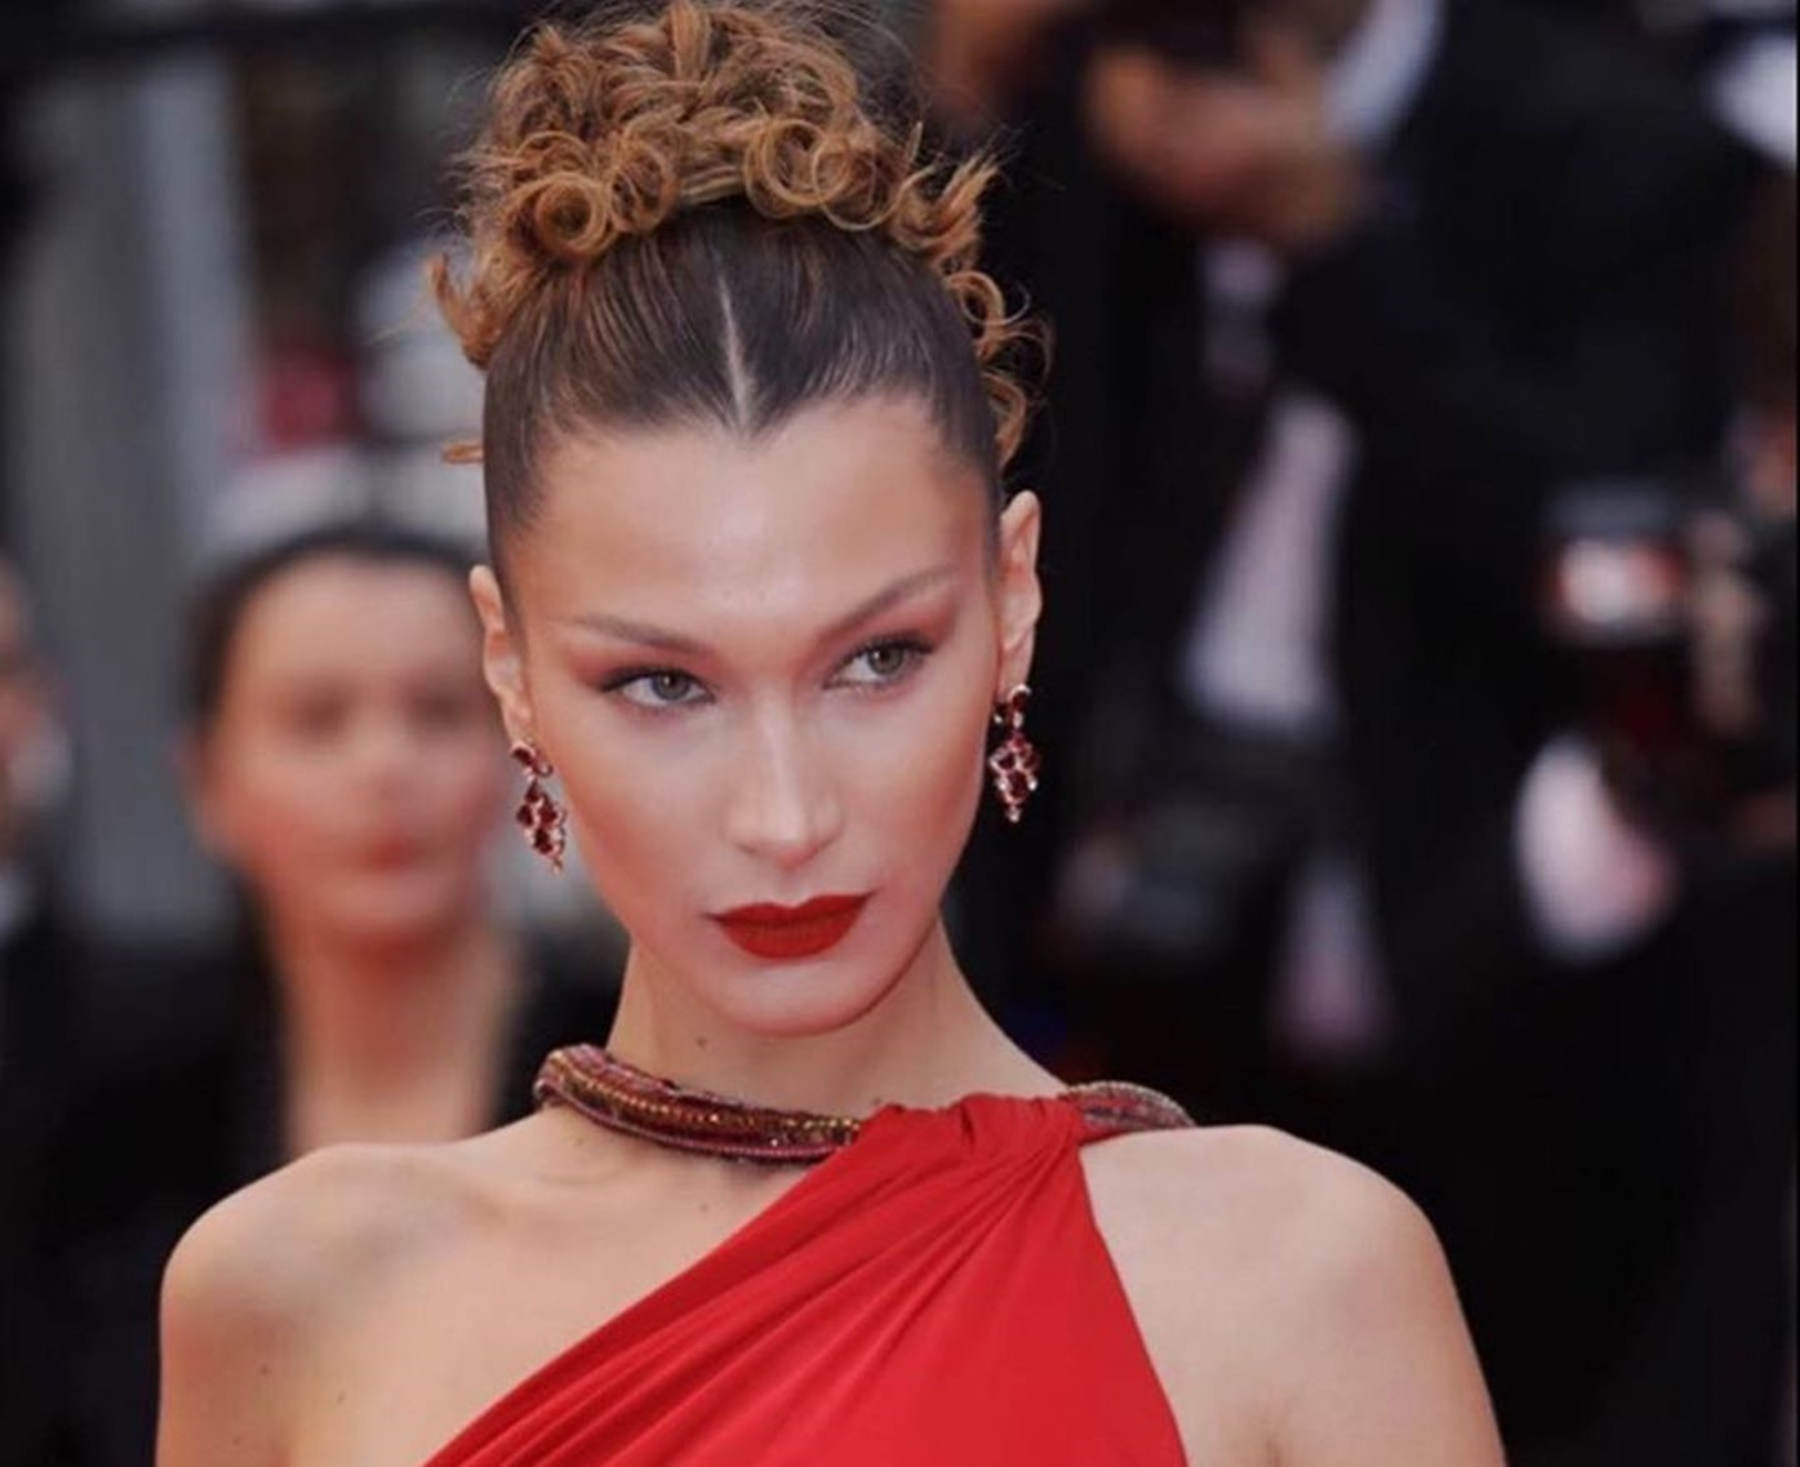 bella-hadid-posts-alluring-video-and-deletes-it-without-explanation